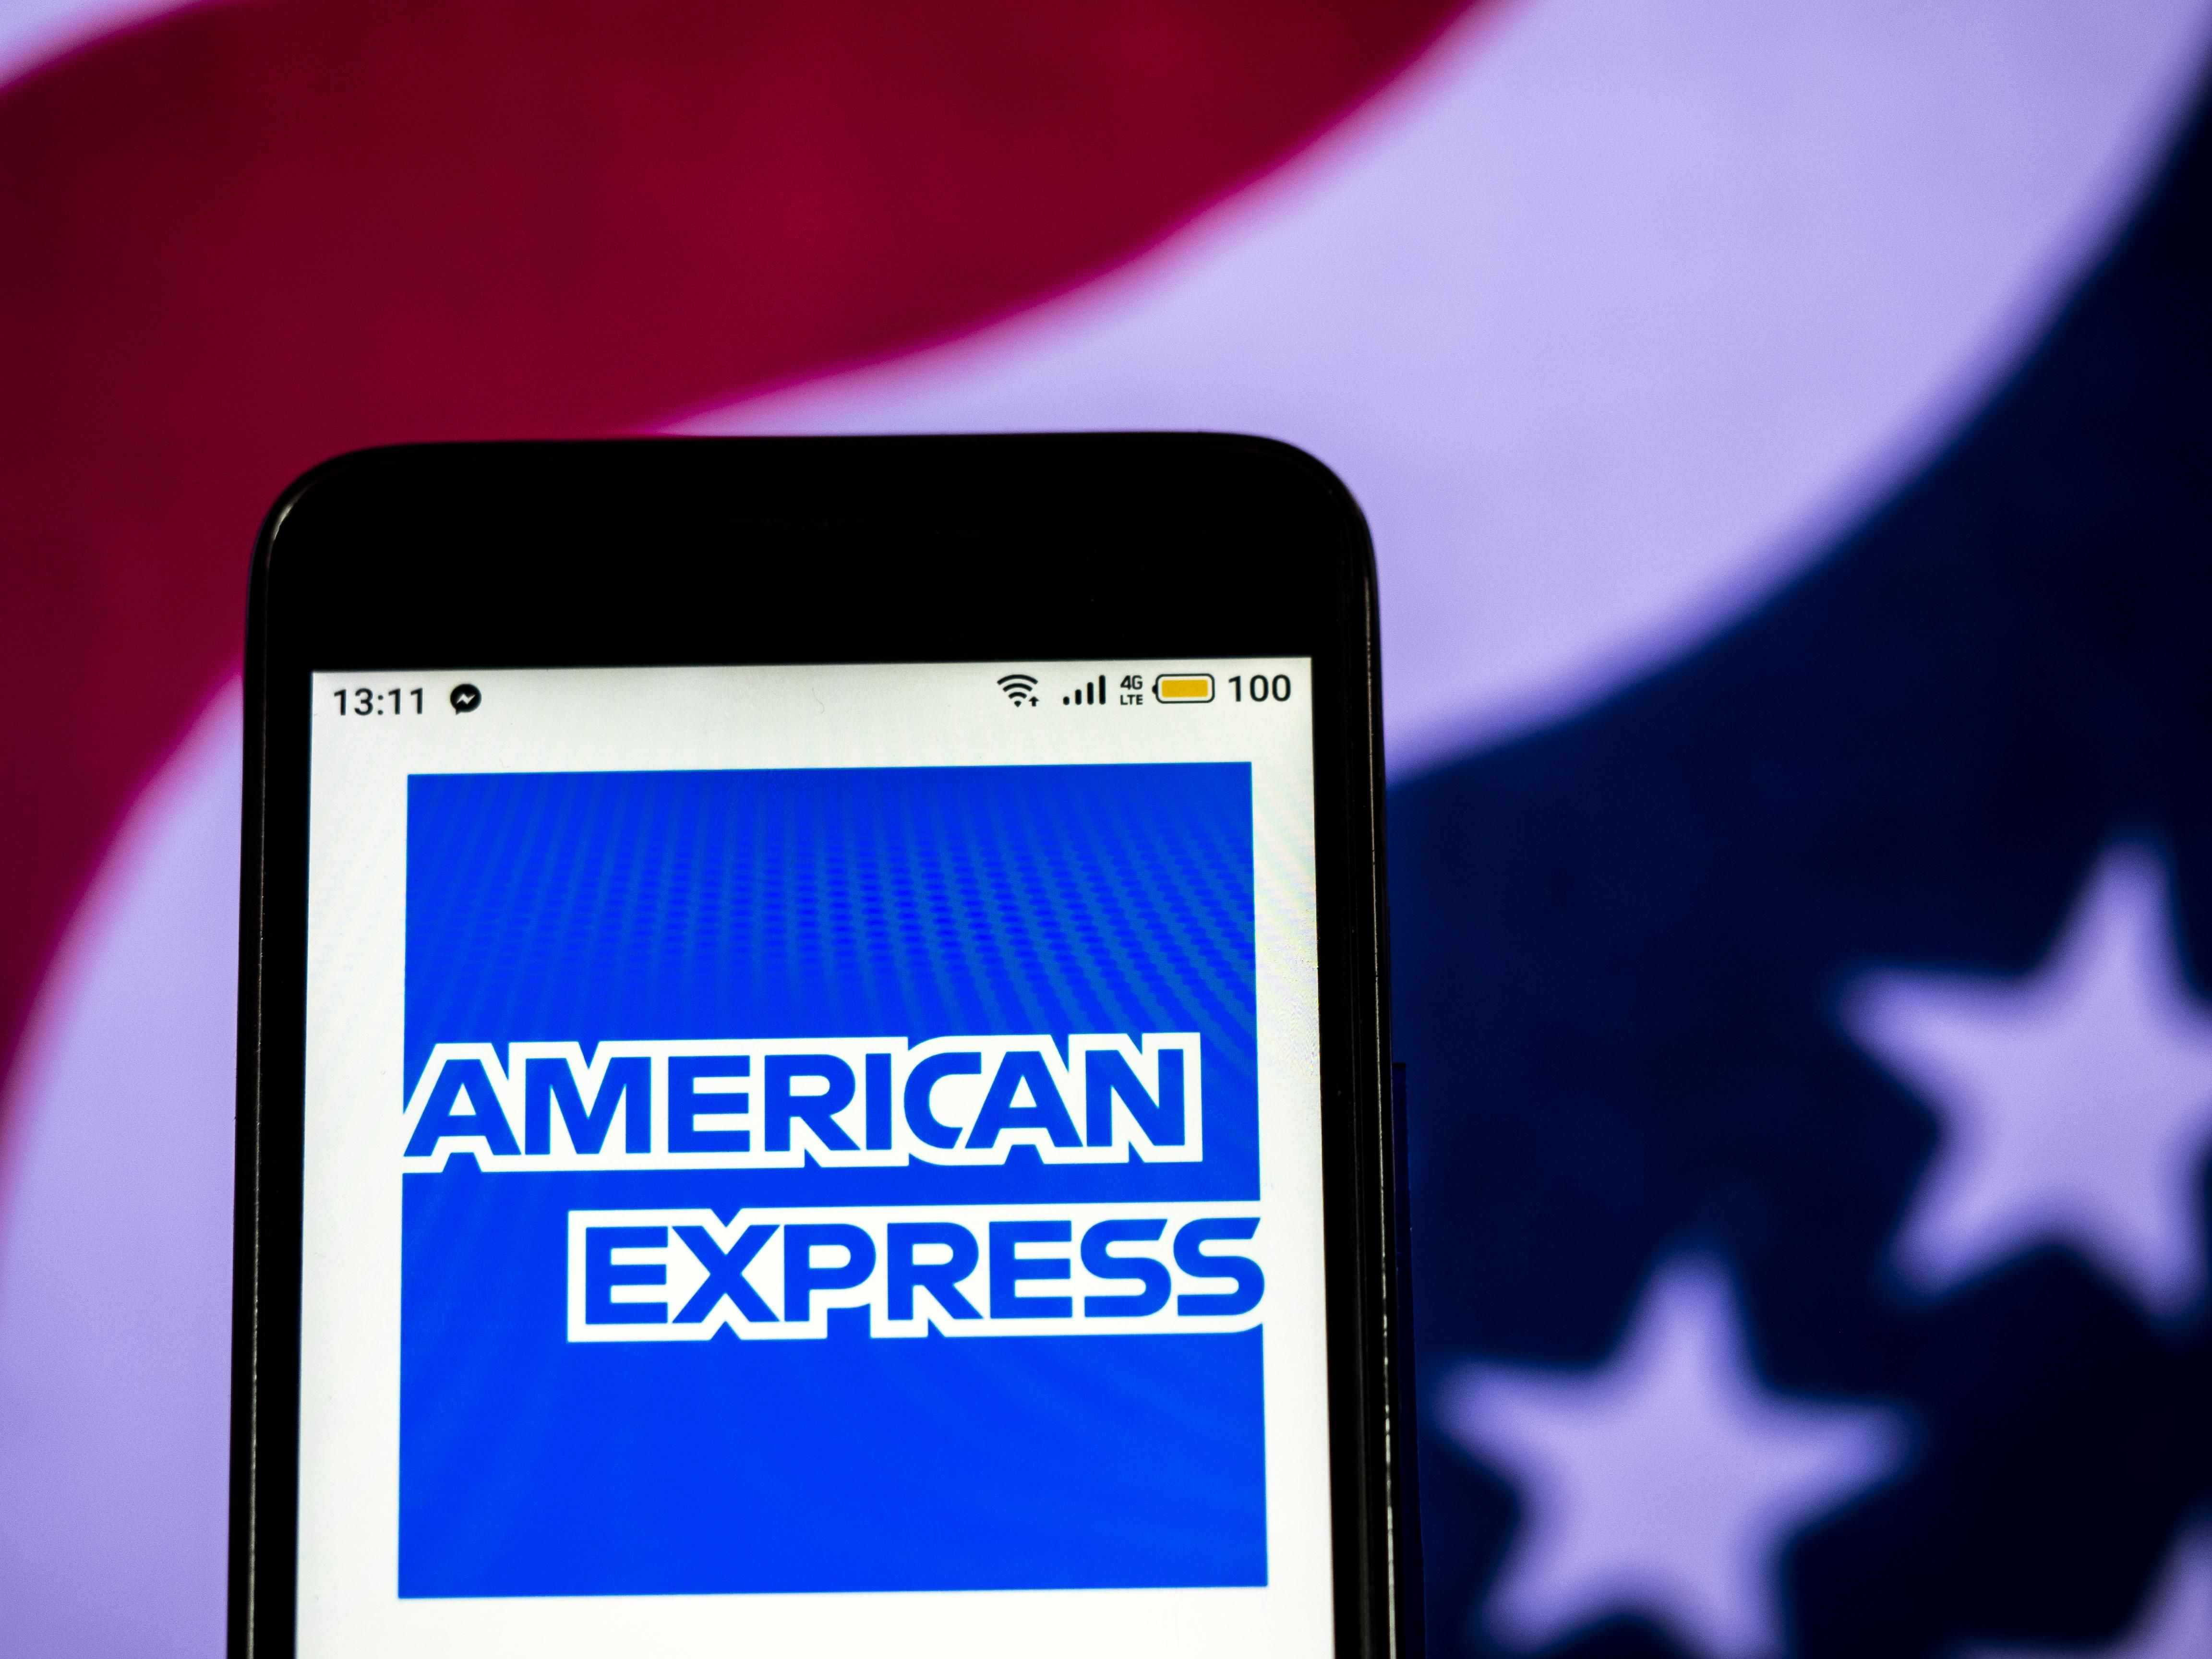 american express stock side